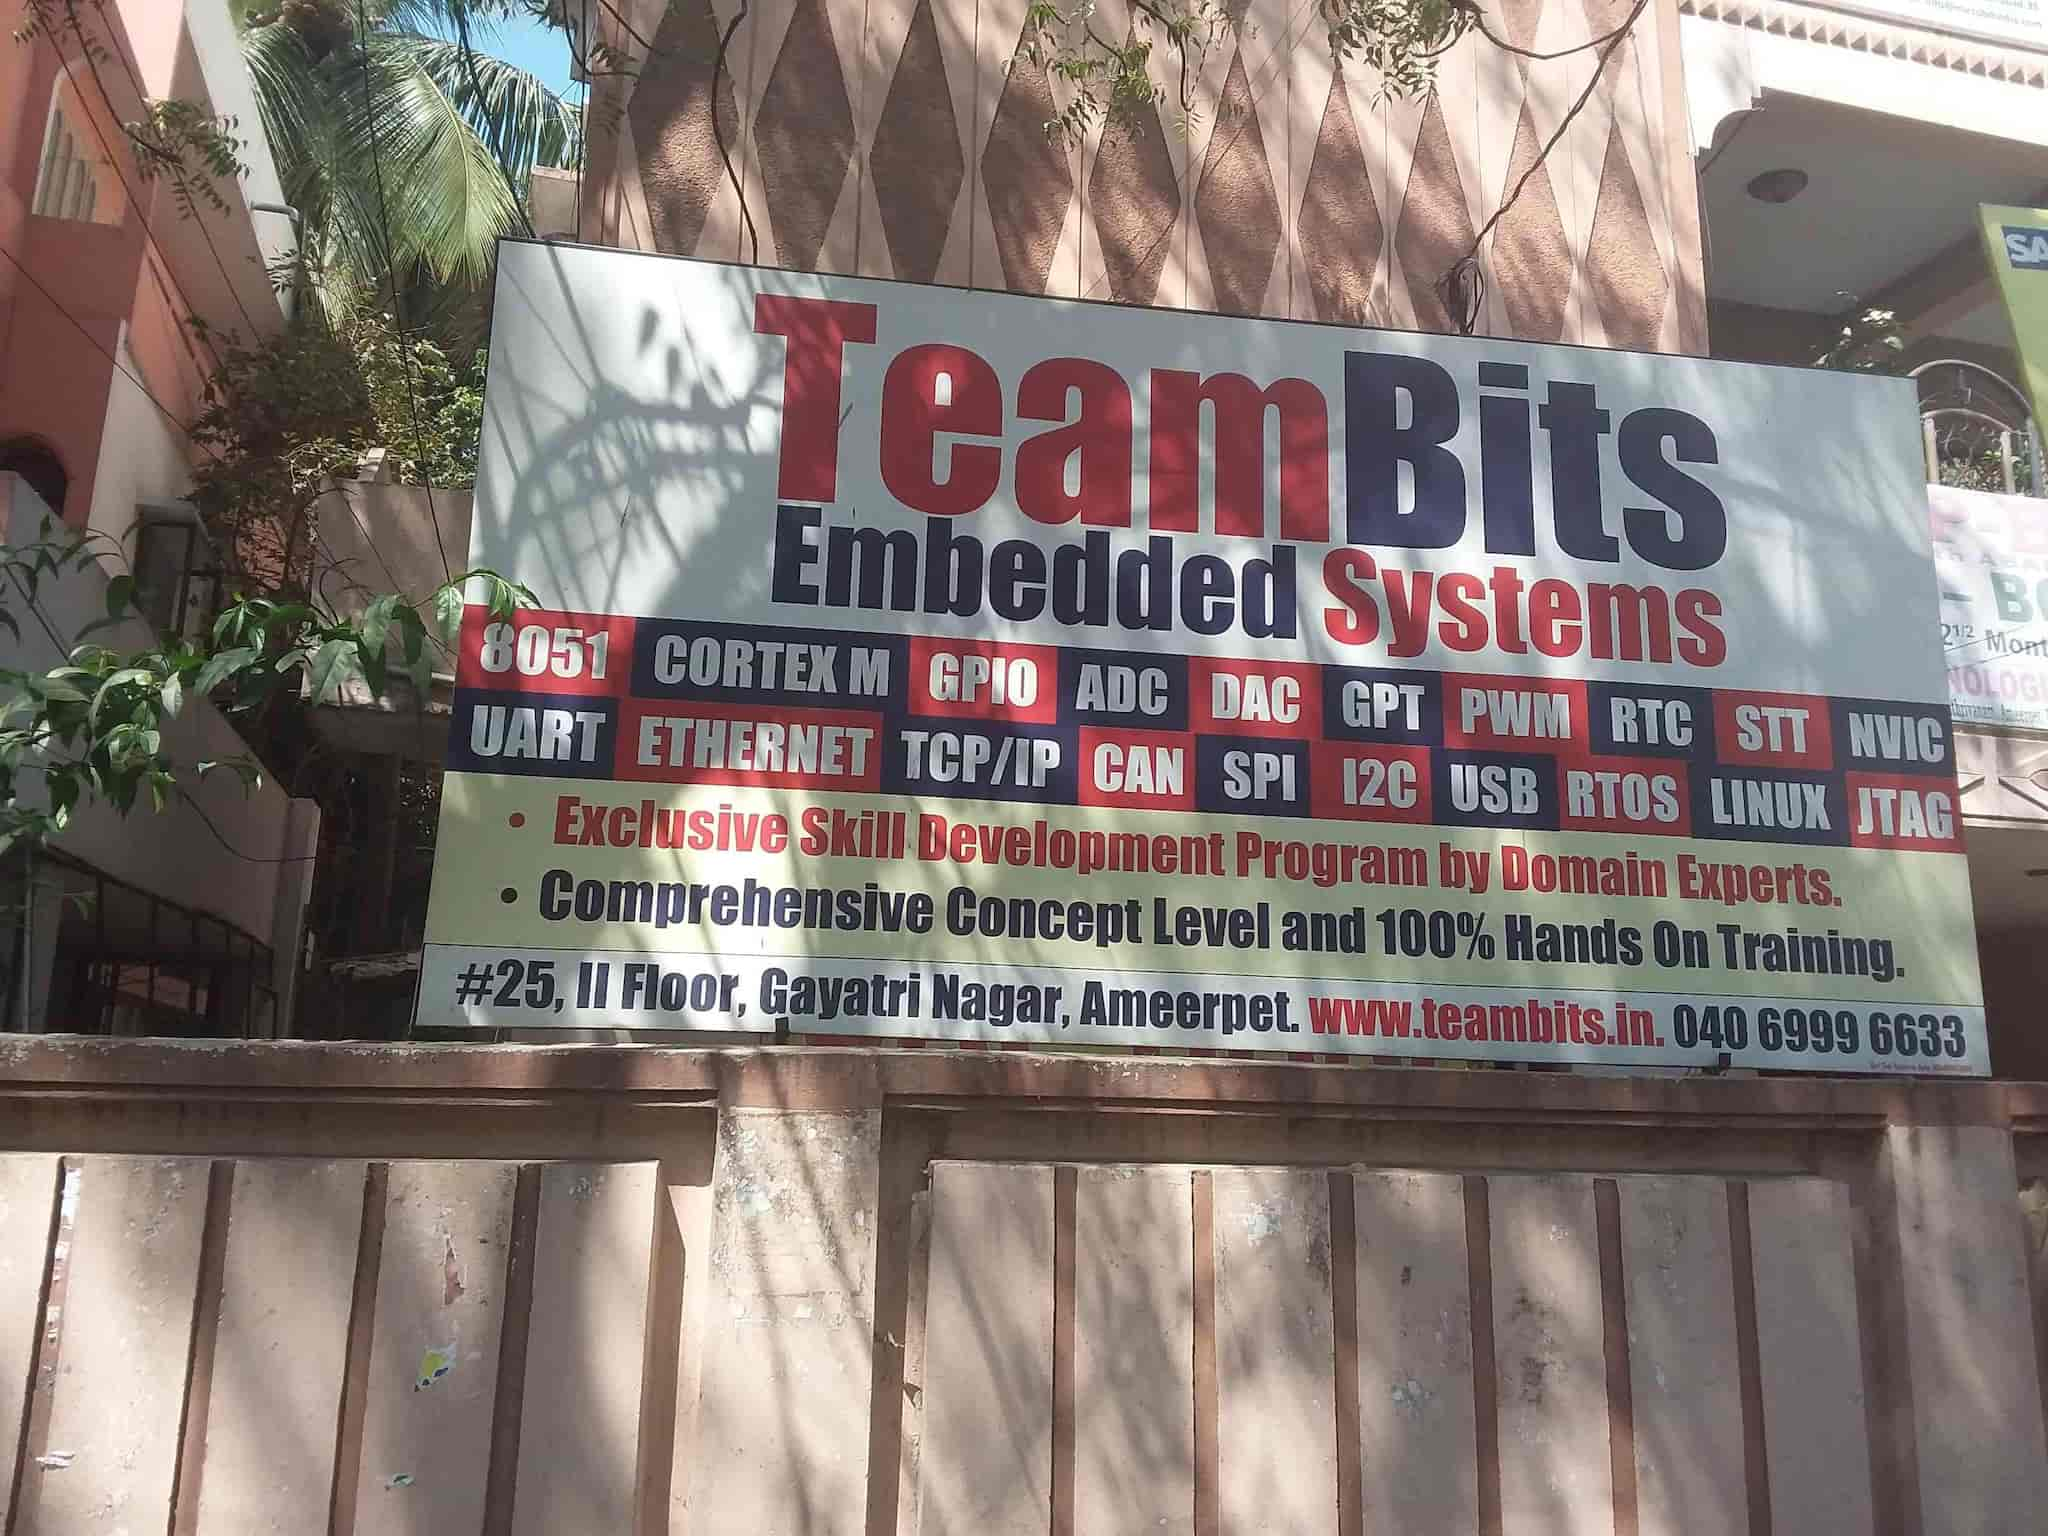 Teambits Embedded Systems, Ameerpet - Computer Training